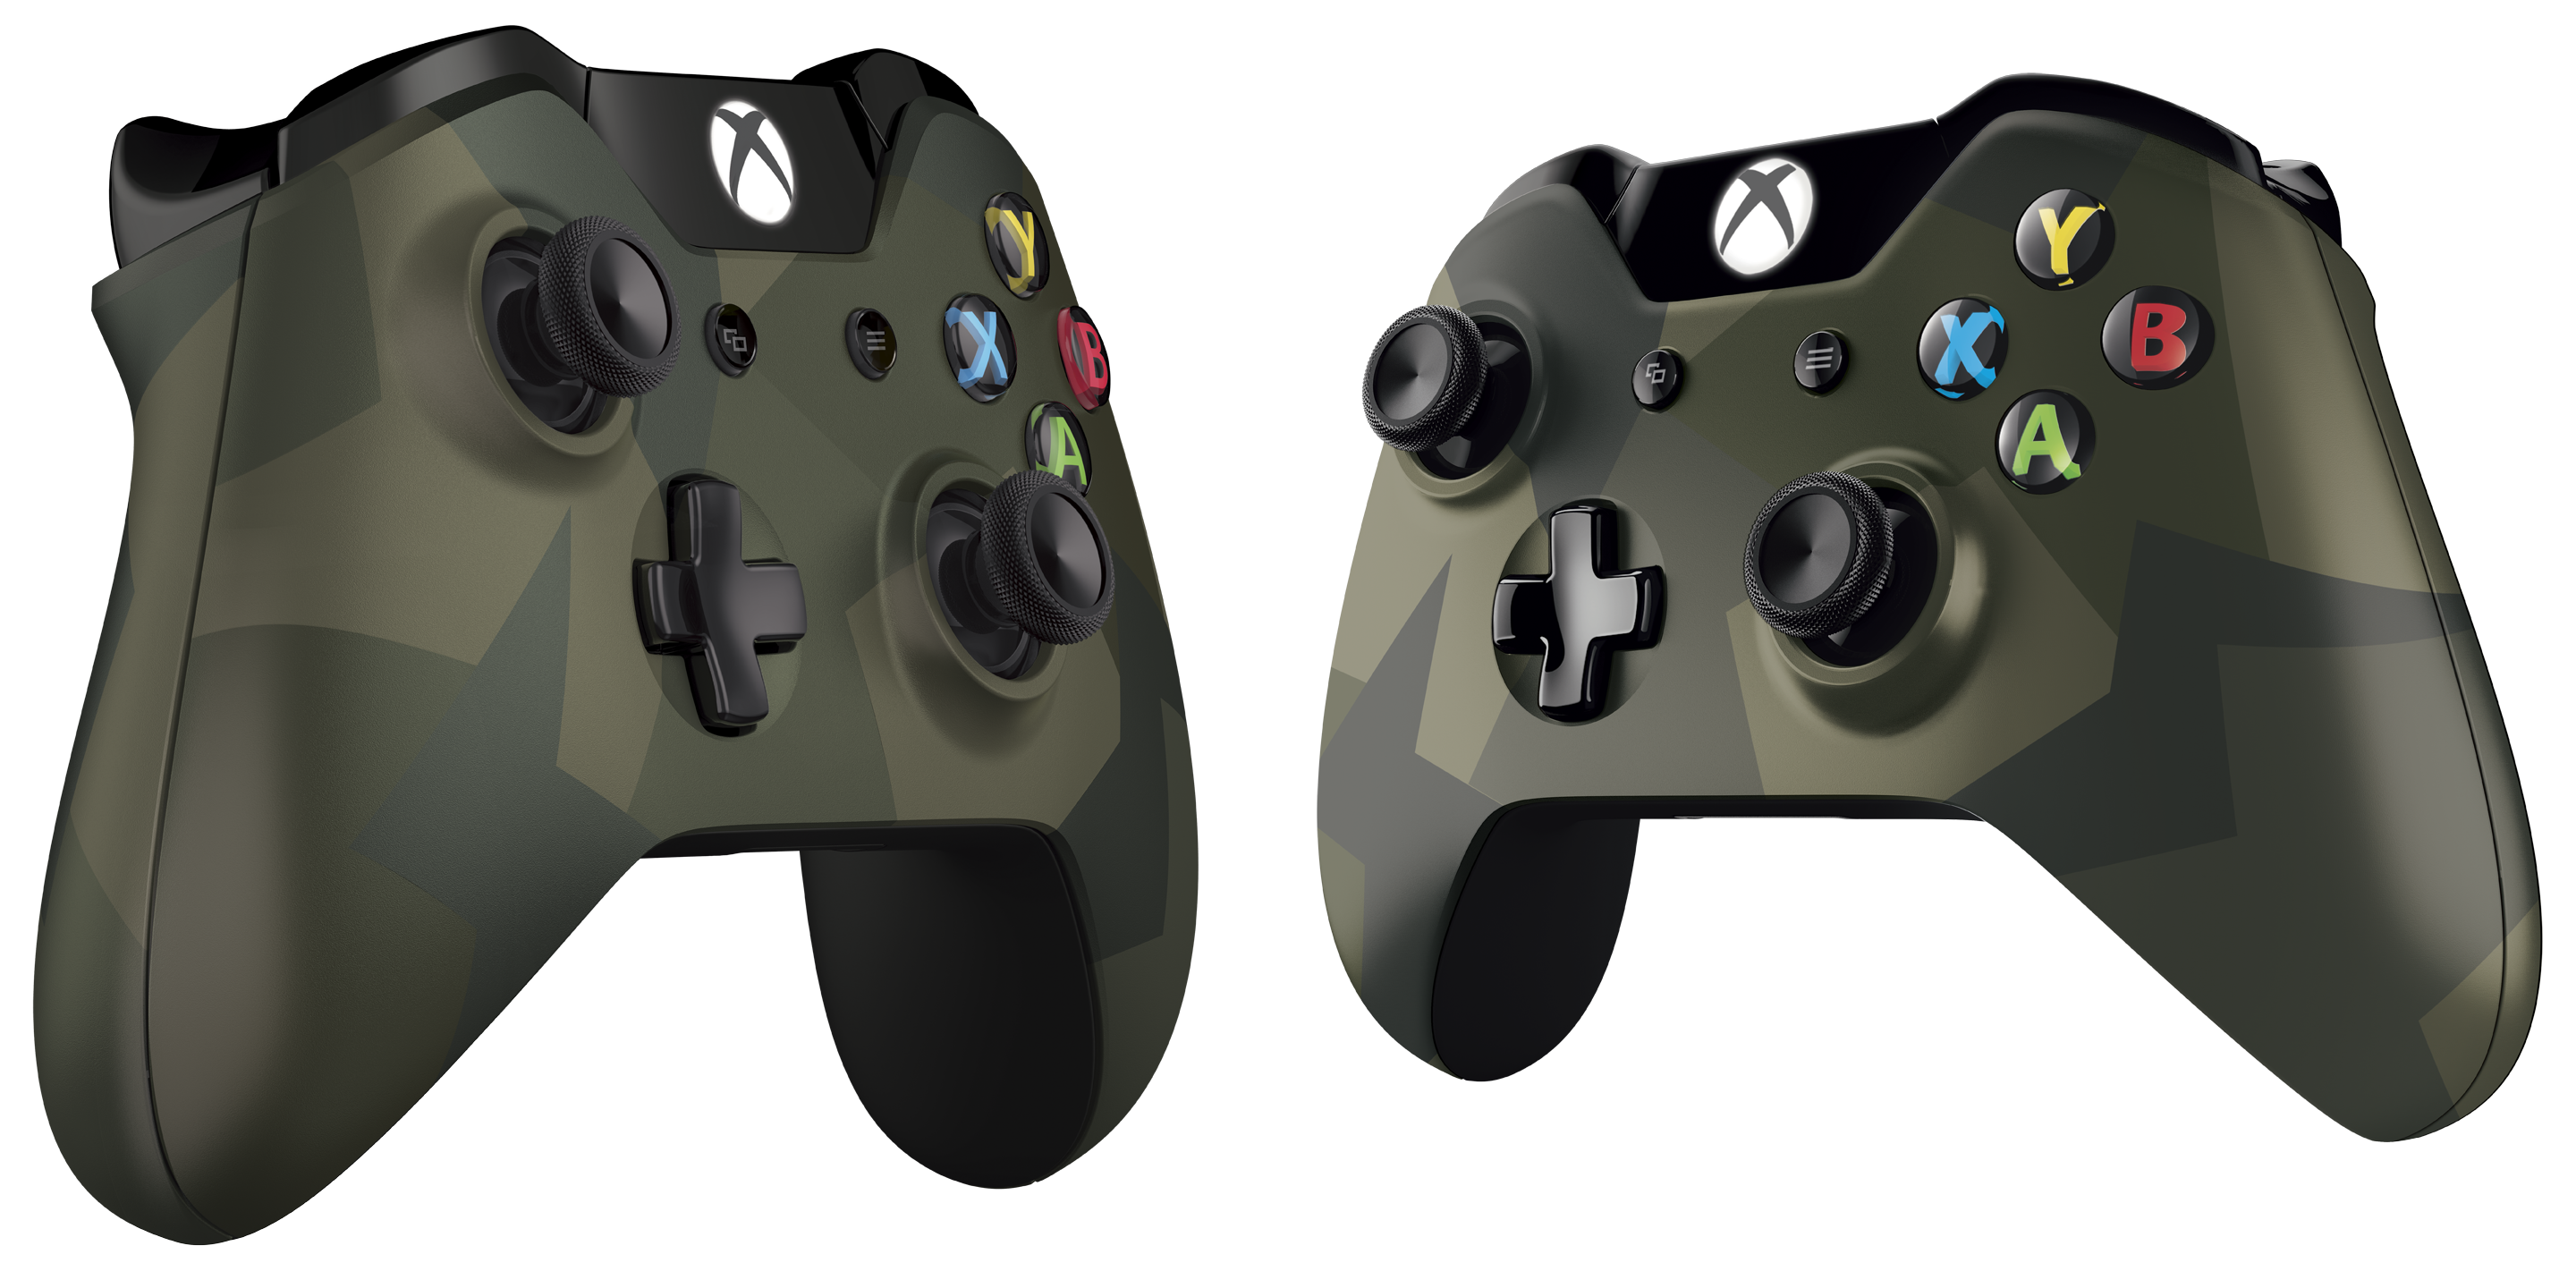 images/attachment/1405469215-xbox-one-special-edition-armed-forces-wireless-controller.png